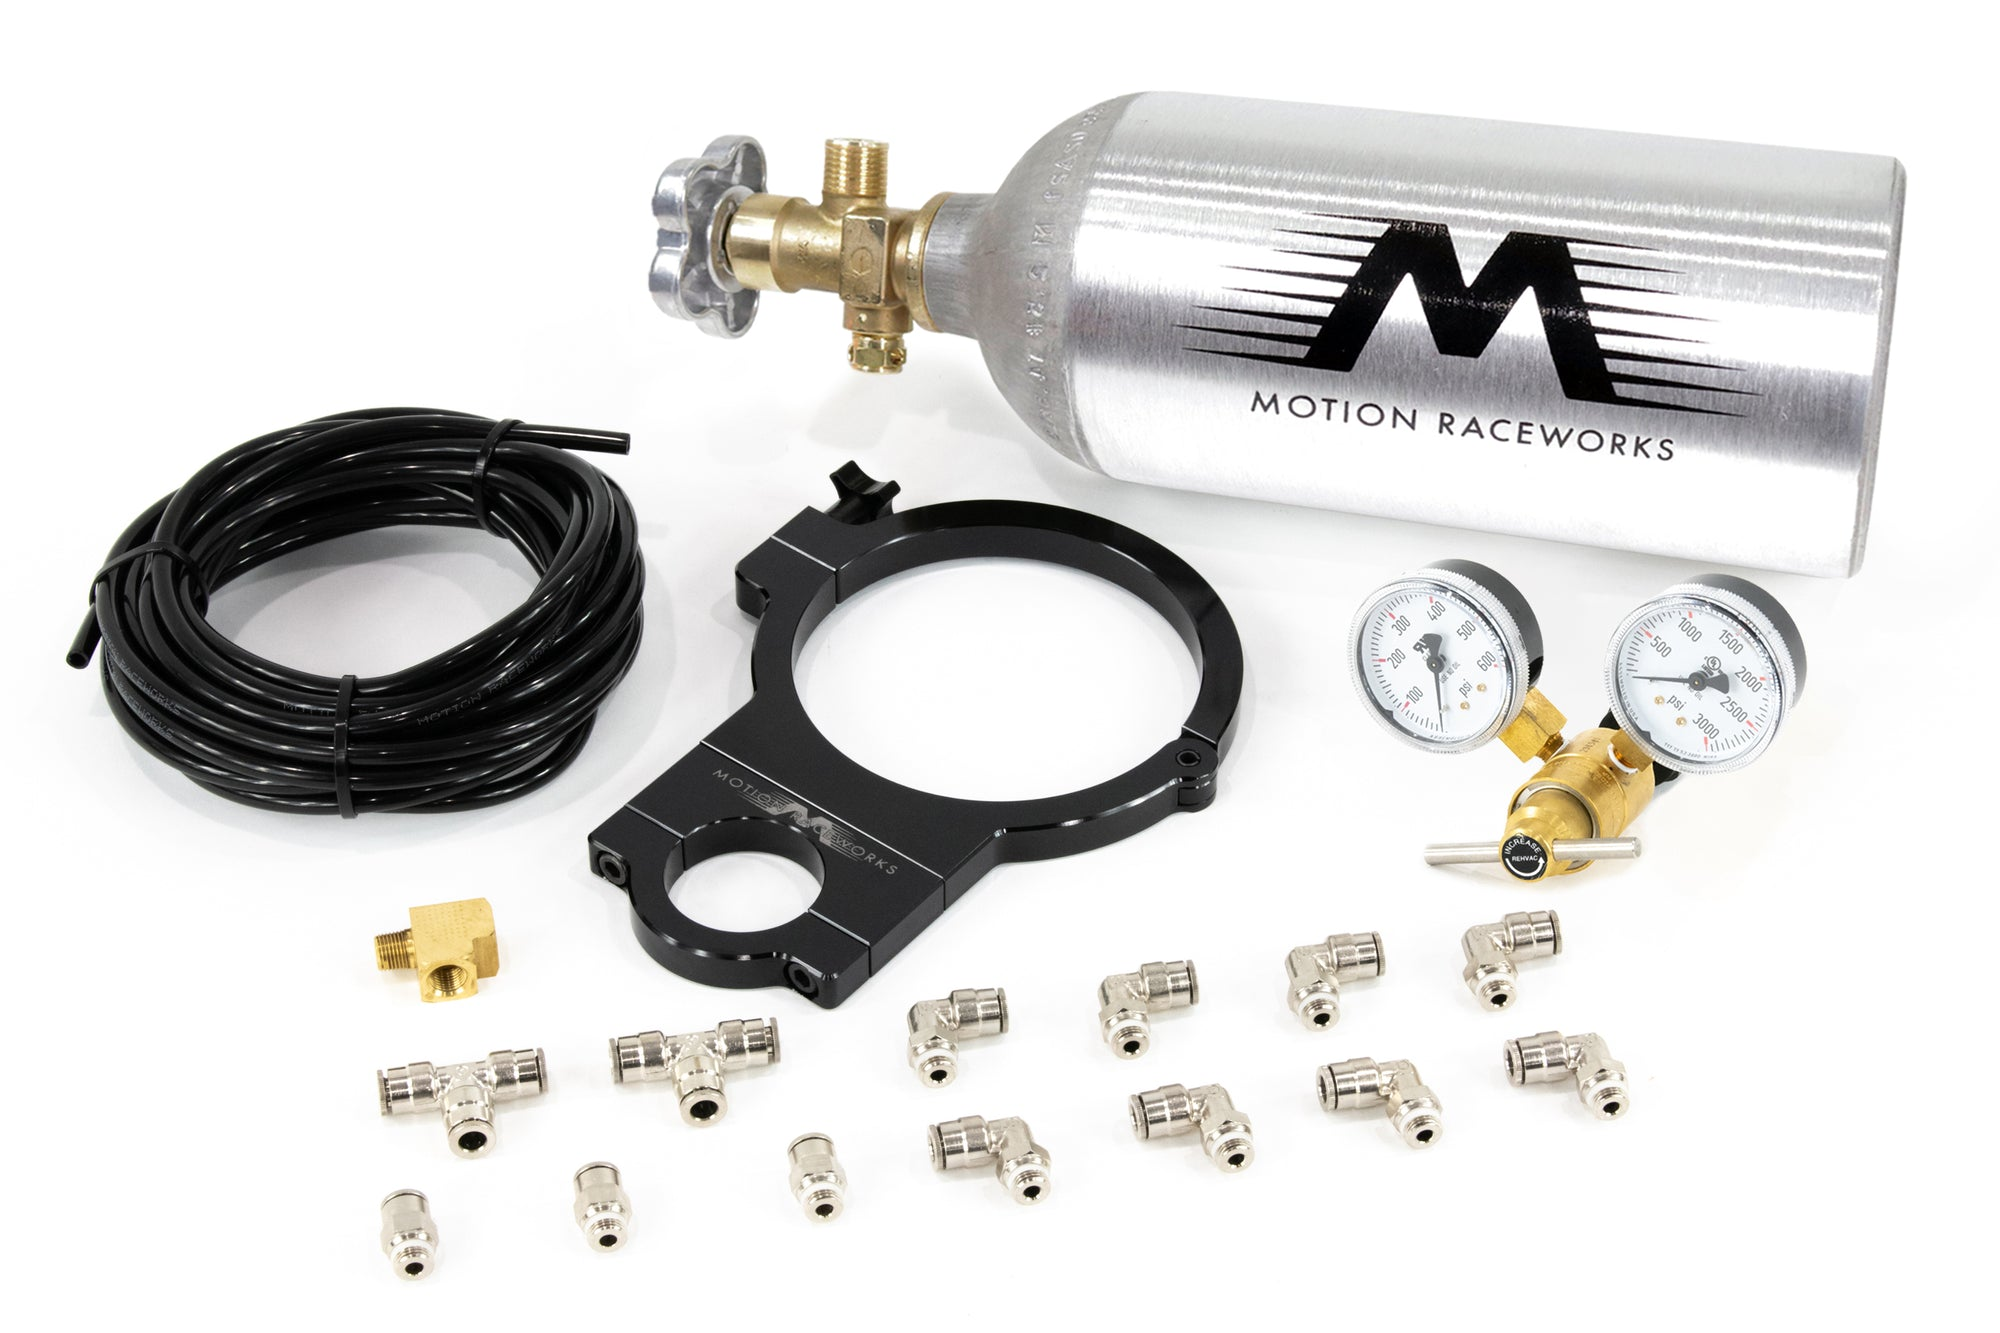 Motion Raceworks Twin Wastegate Turbocharged CO2 Kit-Motion Raceworks-Motion Raceworks